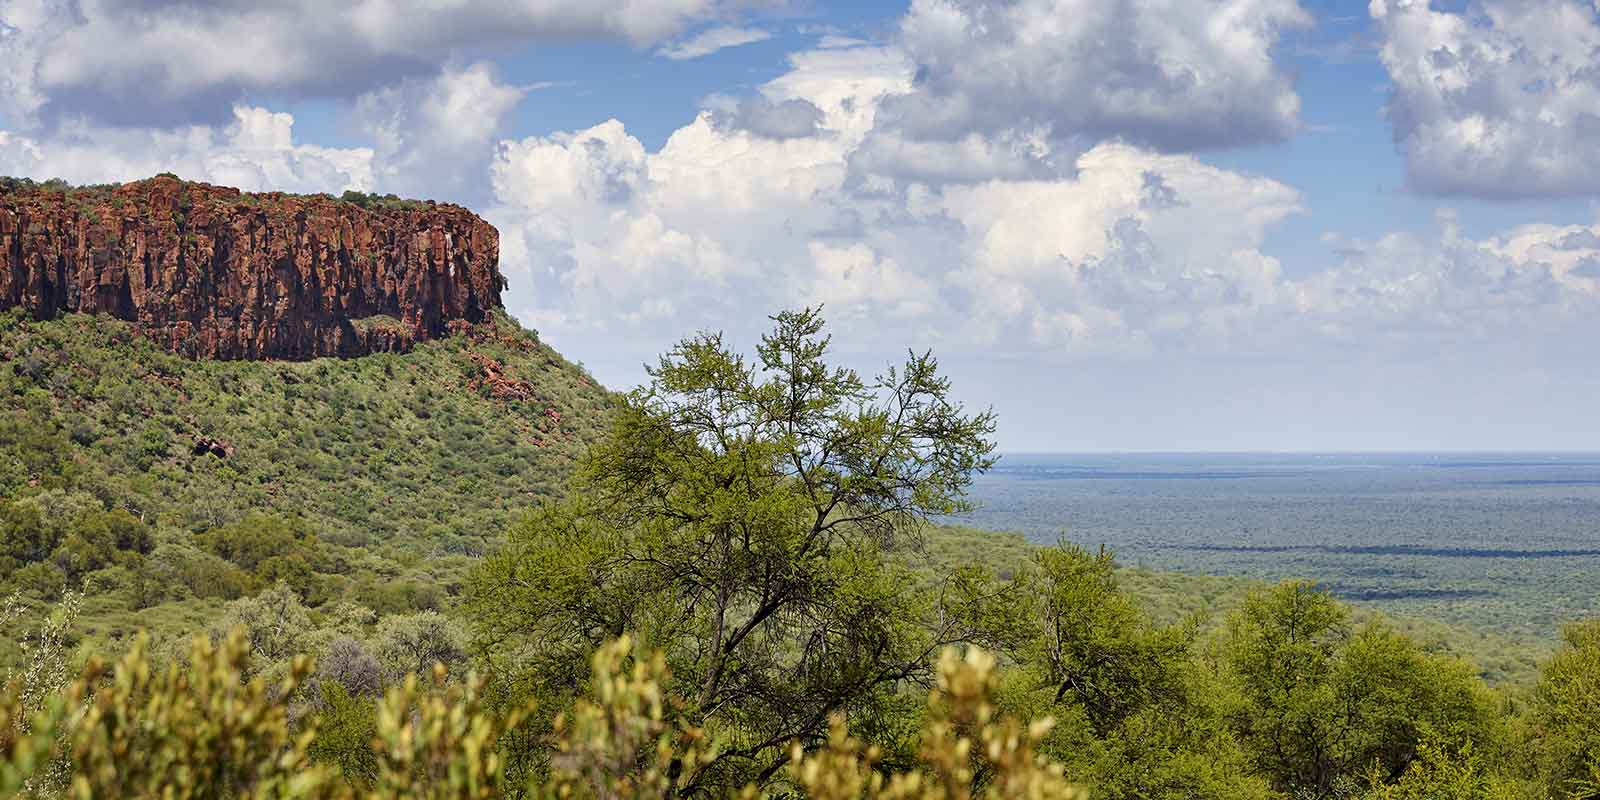 Wiew from Waterberg Plateau looking out over the grassy plains